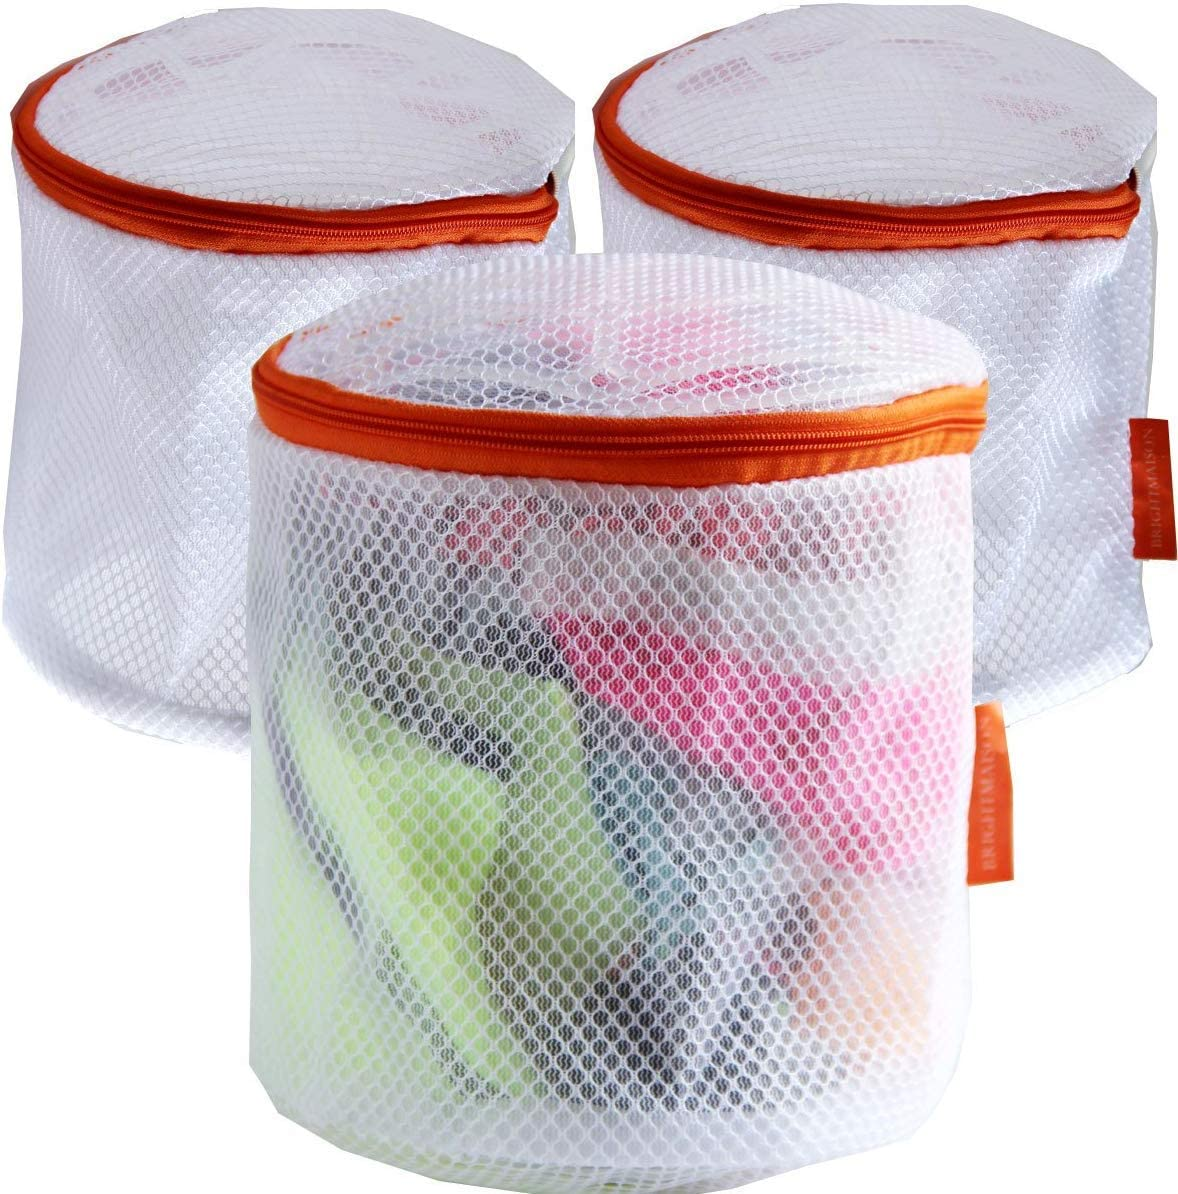 Delicate Set of Larger 3 Laundry Bra Washing Bags, Premium Quality: Lingerie Bags for Laundry,Bra, Hosiery, Stocking, Underwear & Lingerie and for More Washing Bag Set